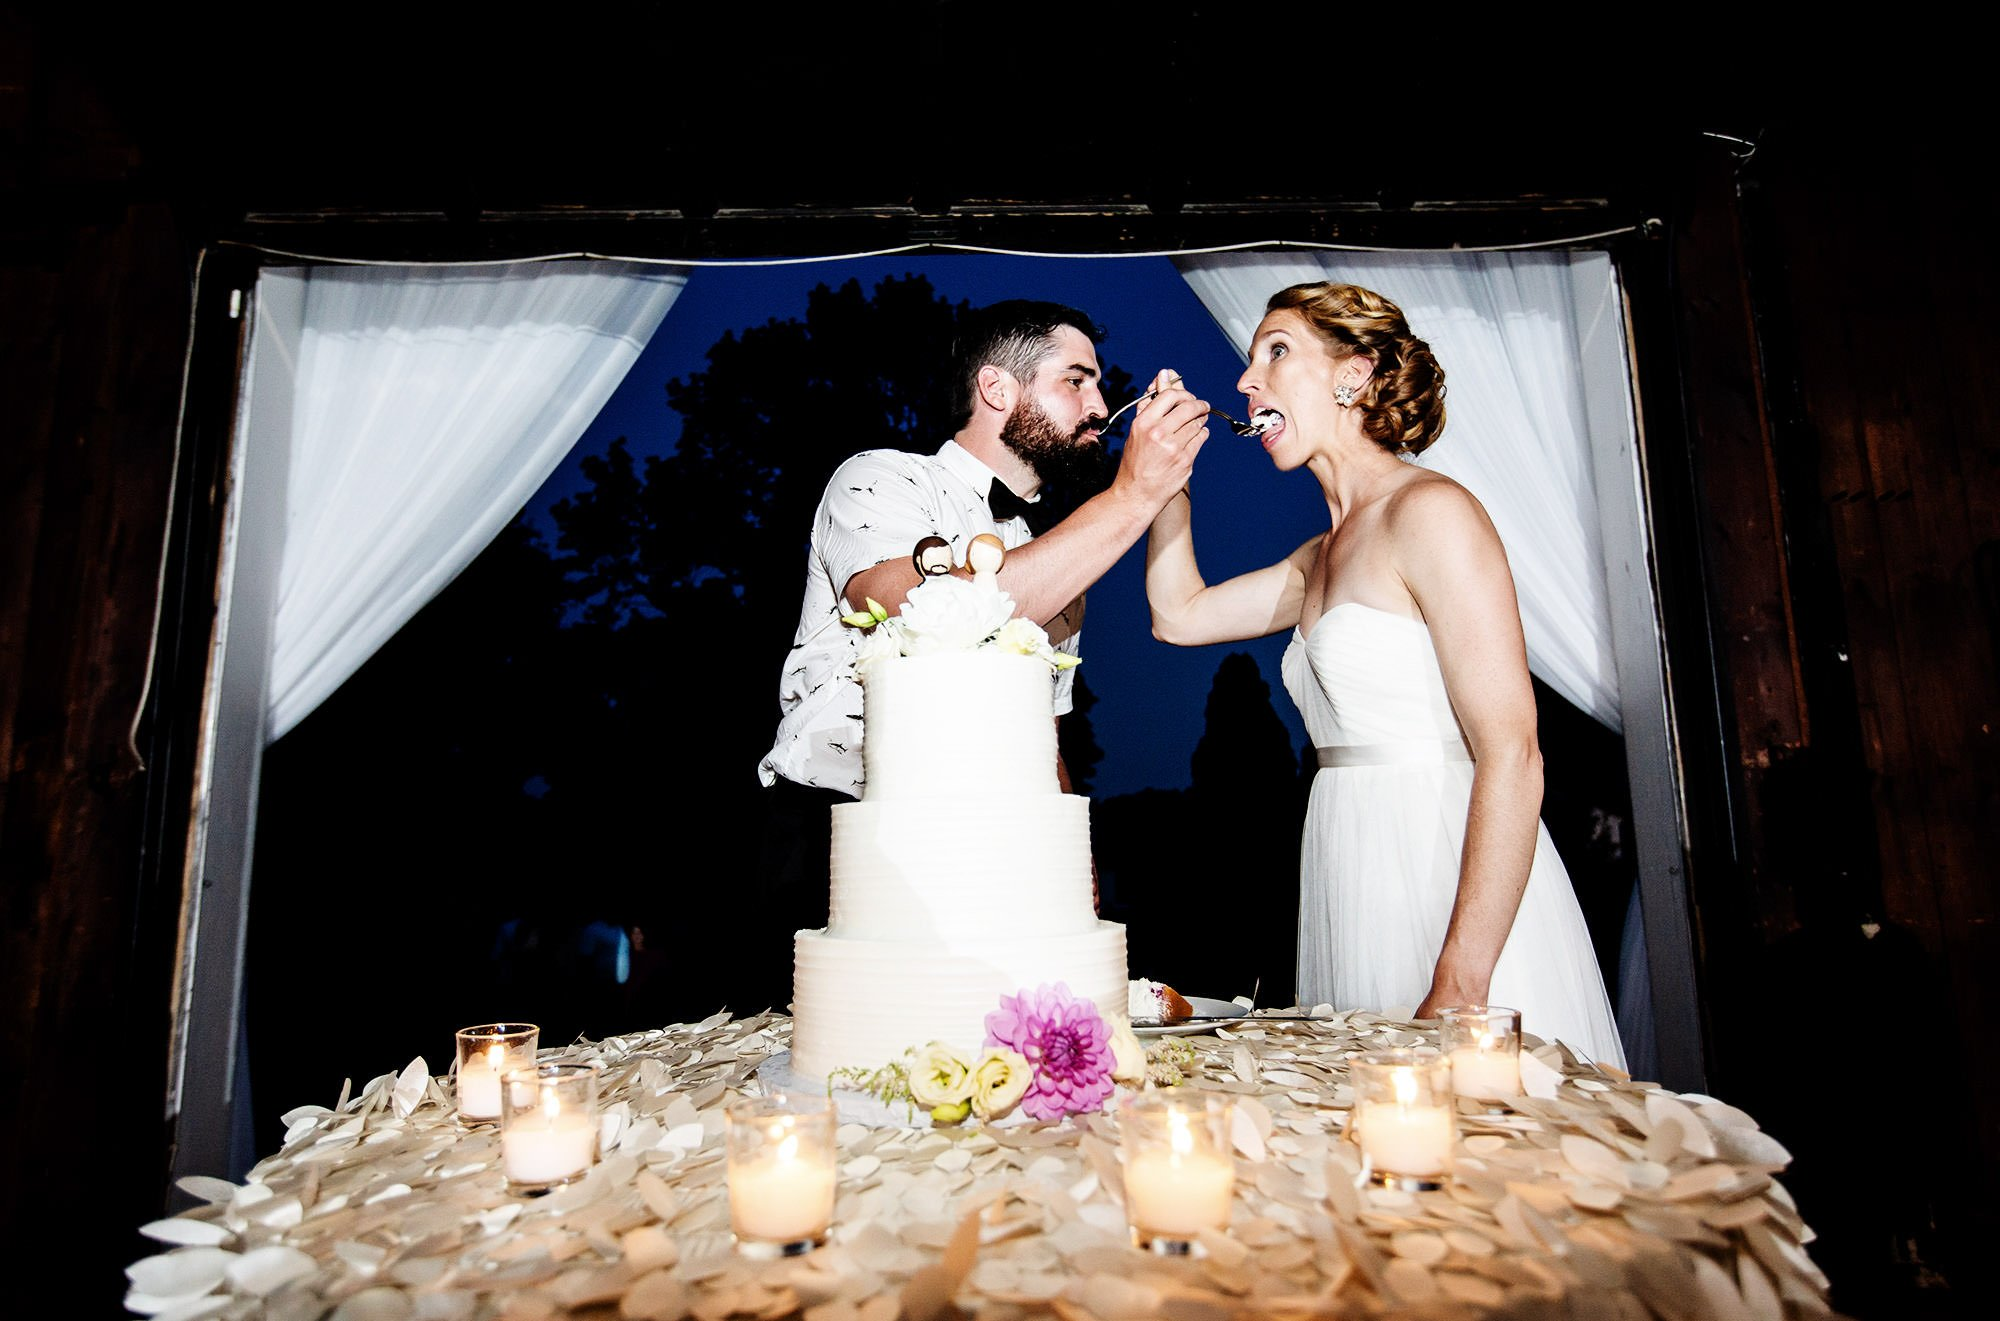 The Bride and Groom cut the cake during their reception at Mount Hope Farm.